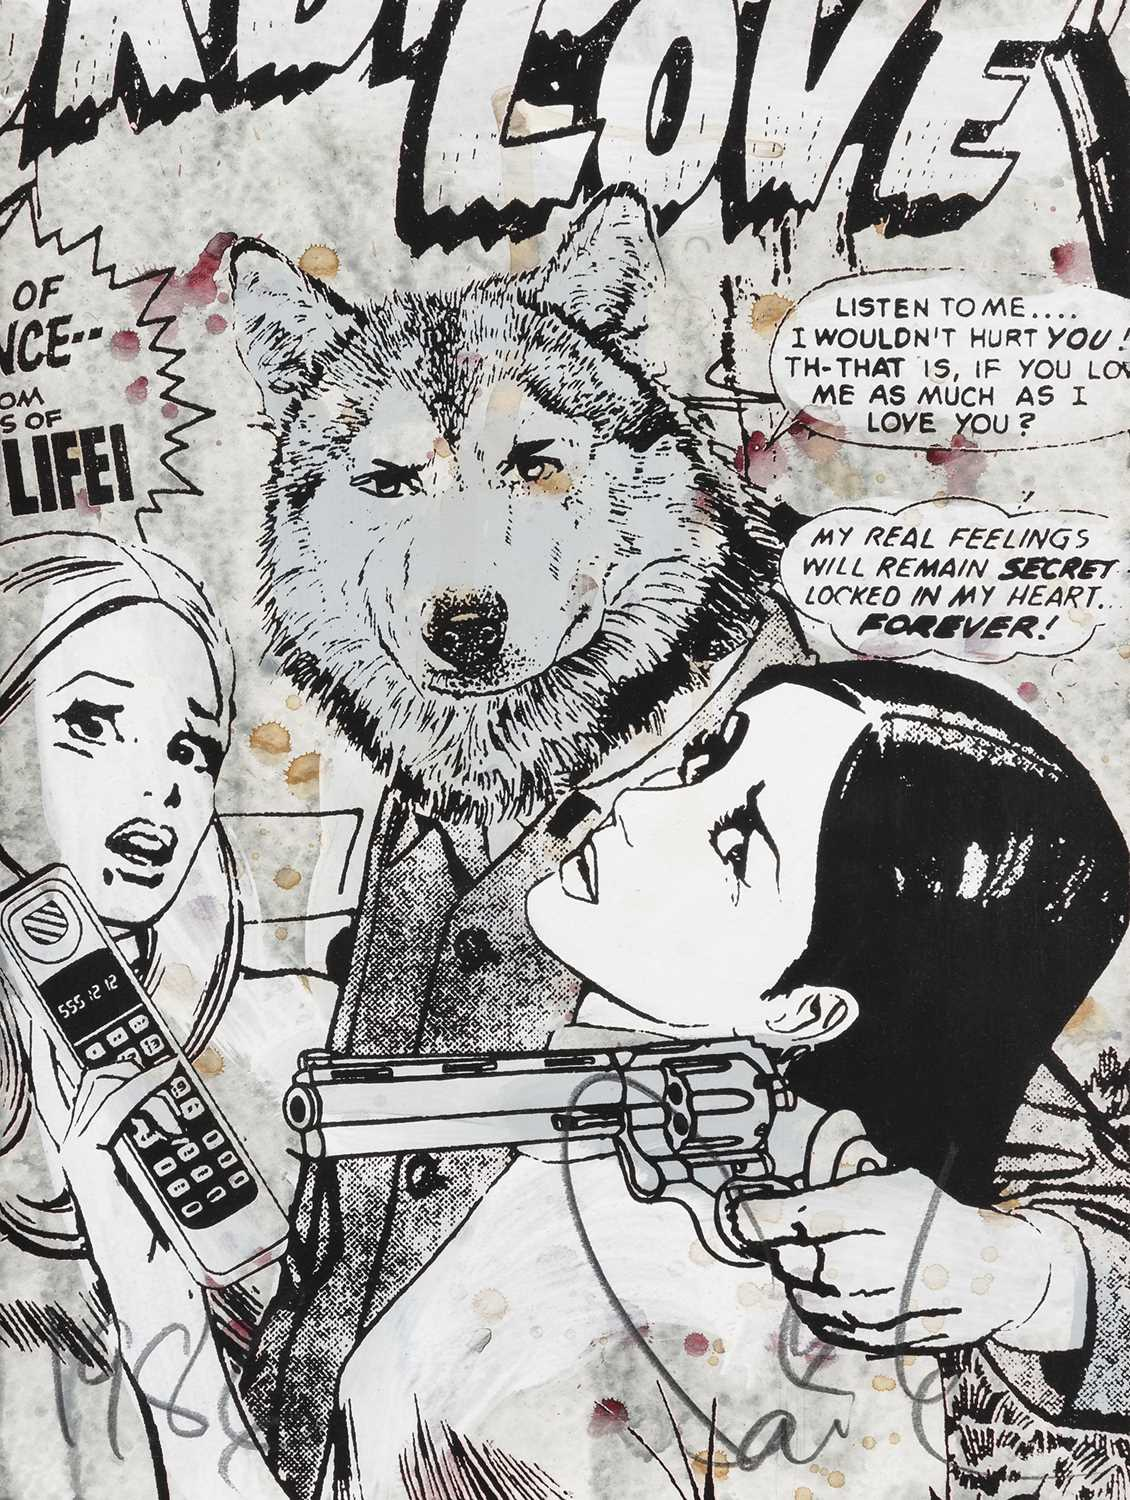 Lot 87 - Faile  (Collaboration), 'Forbidden Forever', 2007